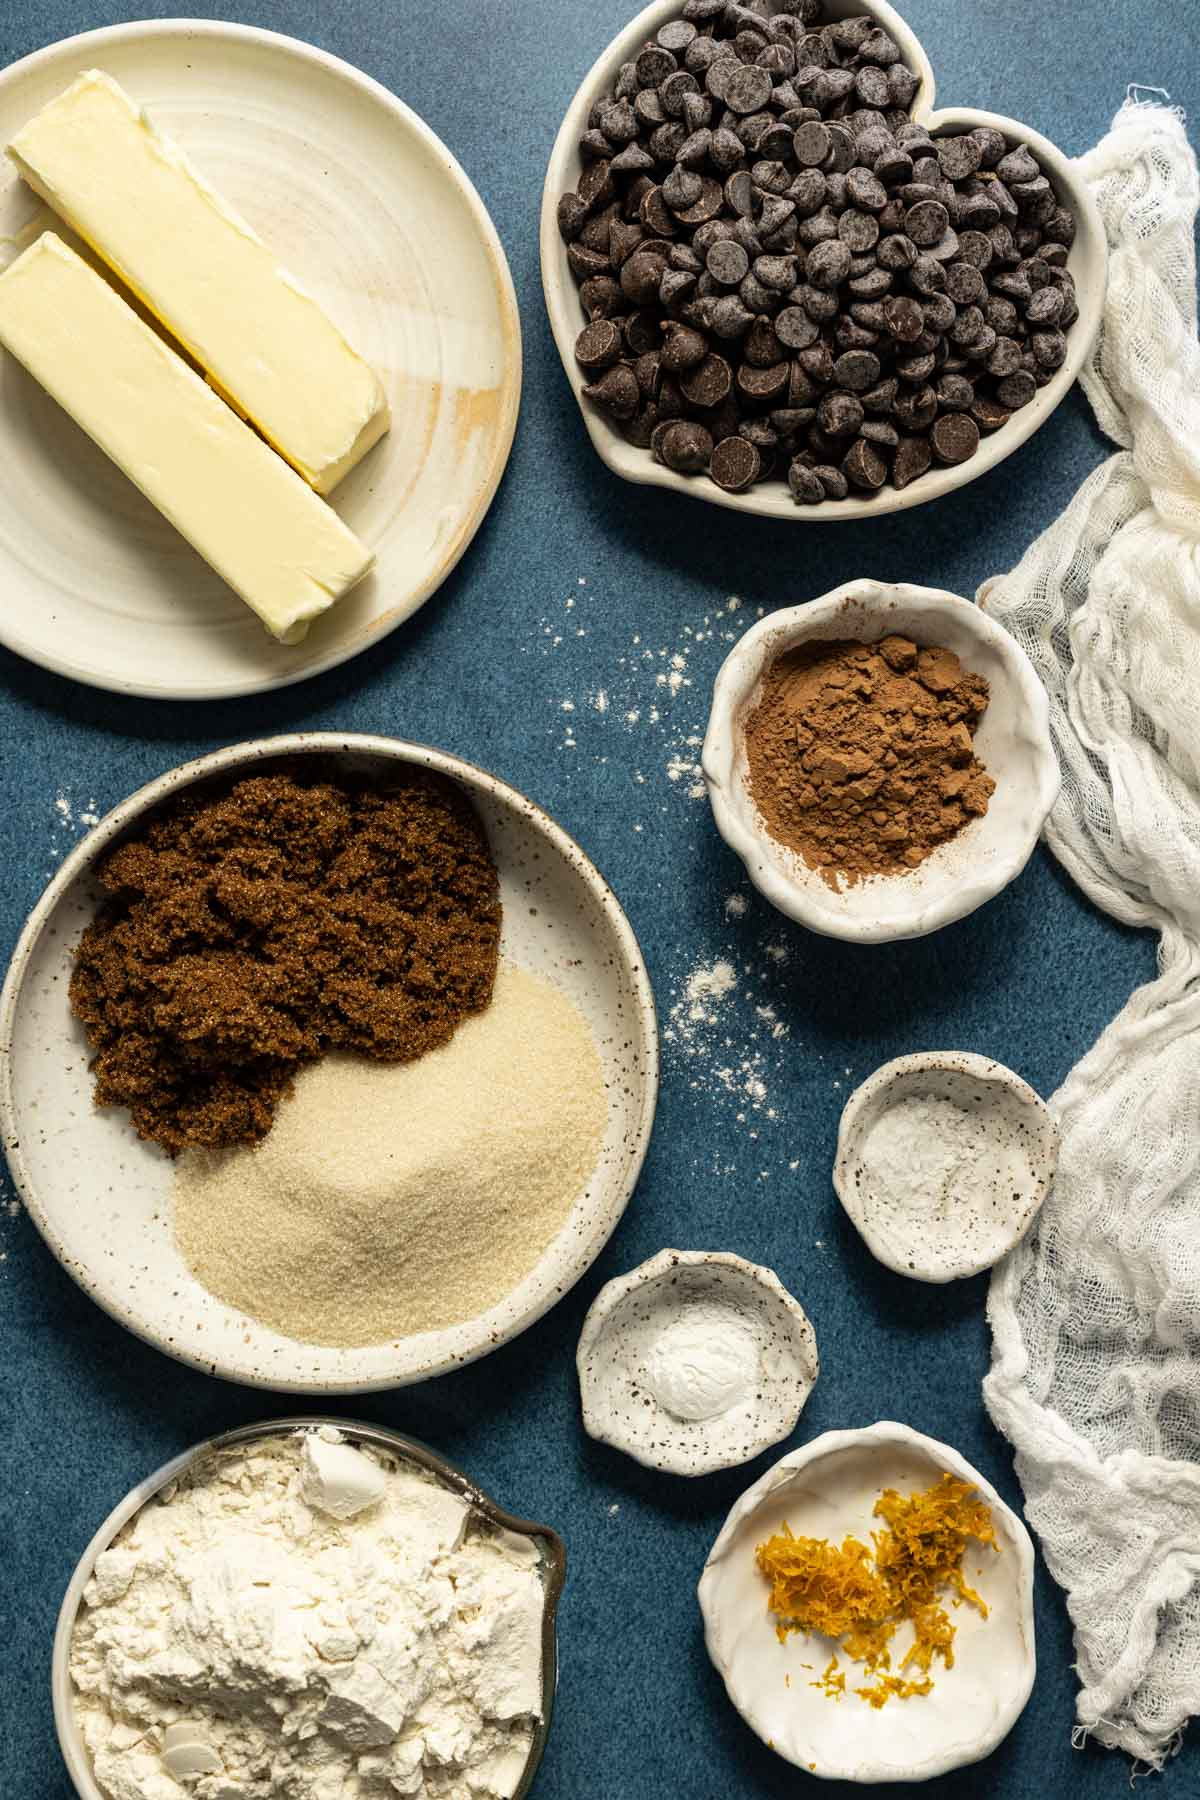 Ingredients for double chocolate chip cookies in bowls